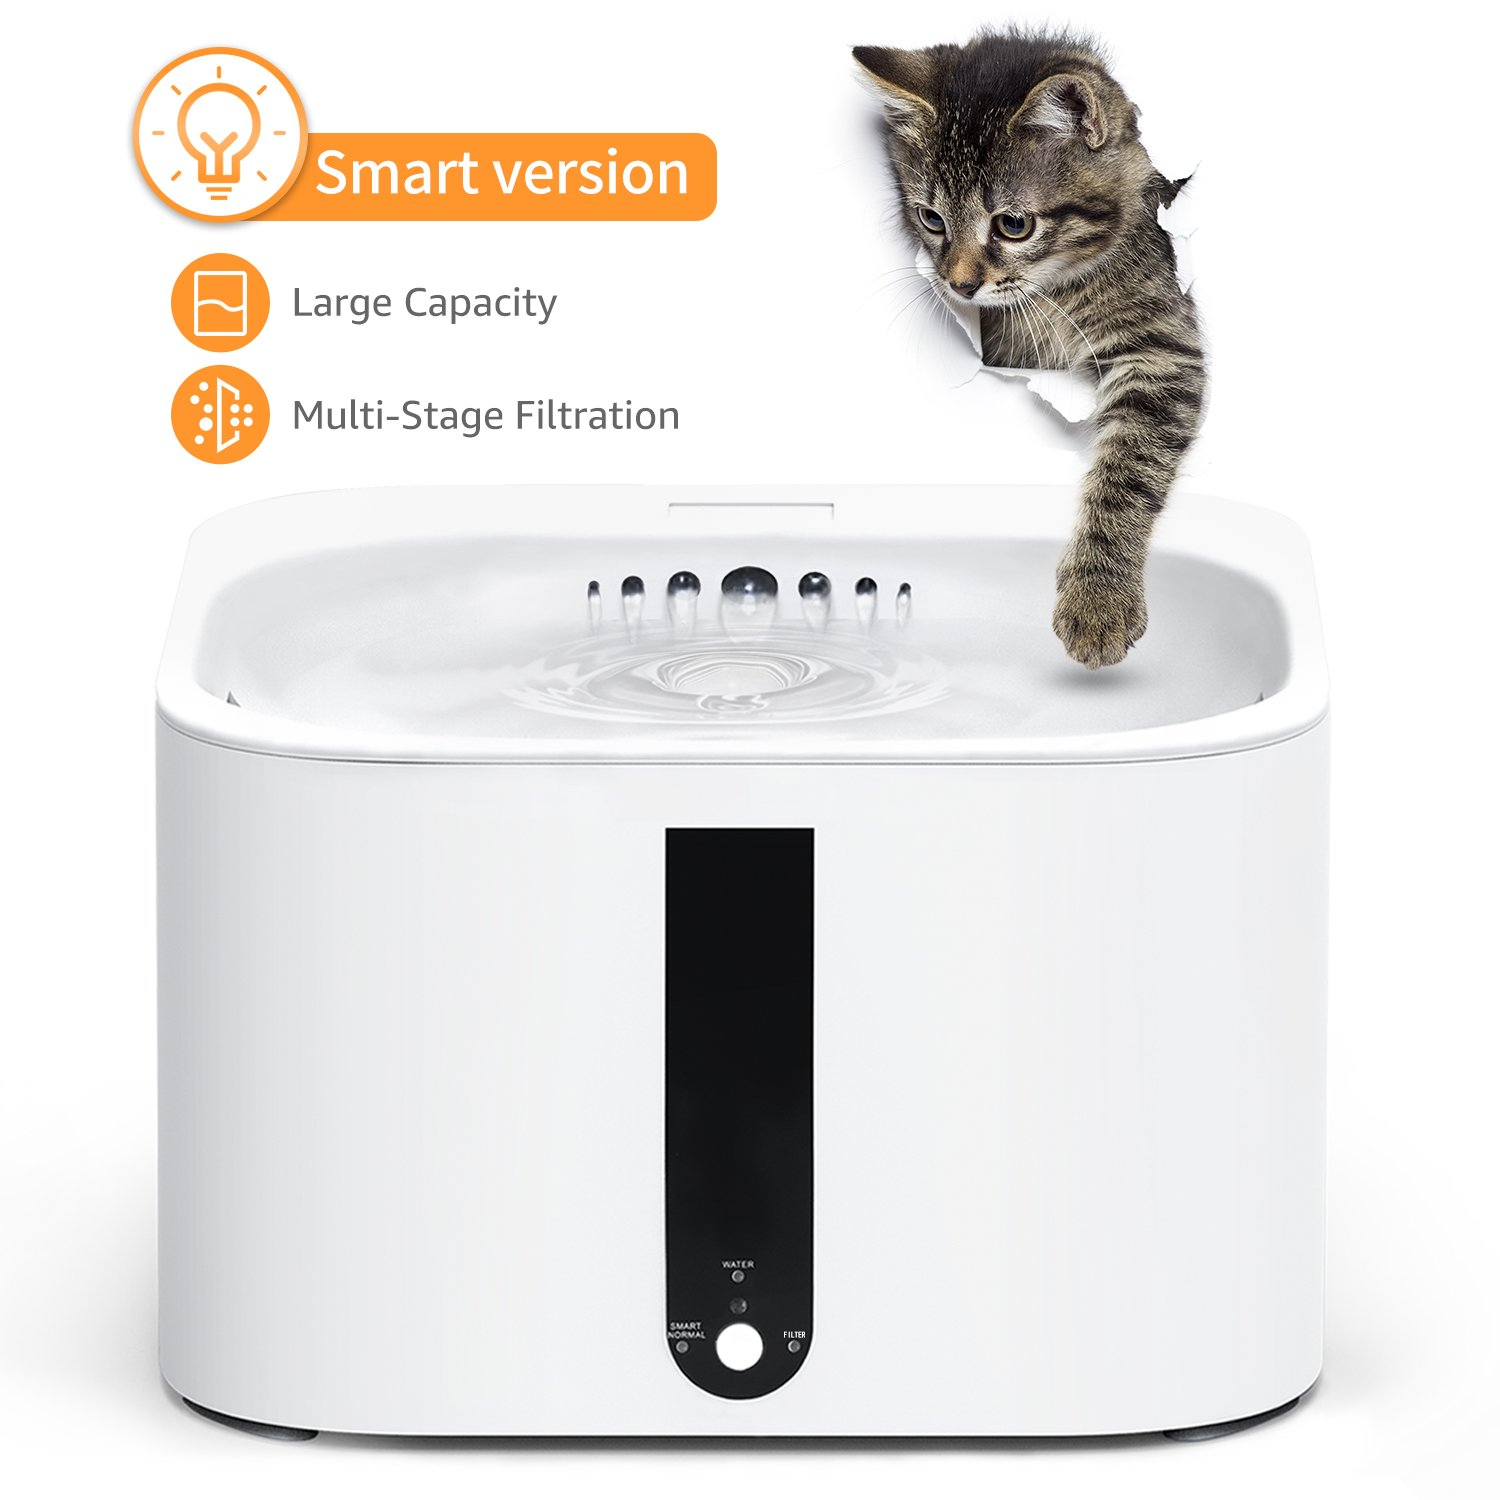 SUKI&SAMI Pet Fountain Cat Water Dispenser Healthy and Hygienic Drinking Fountain 2L Automatic Electric Water Bowl for Dogs, Cats, Birds and Small Animals White by SUKI&SAMI